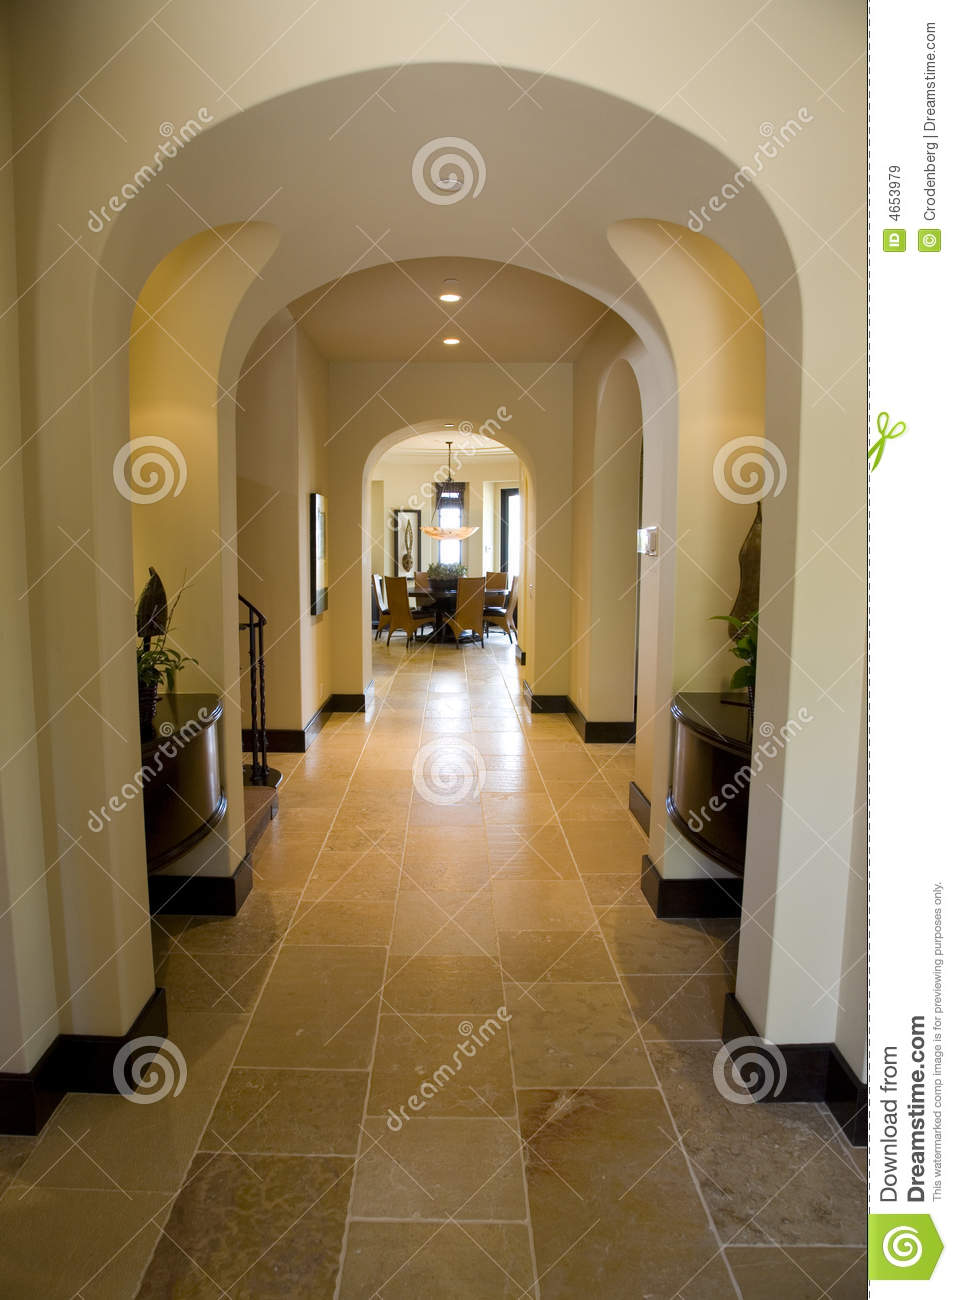 Furniture For Less Luxury Home Hallway. Royalty Free Stock Images - Image